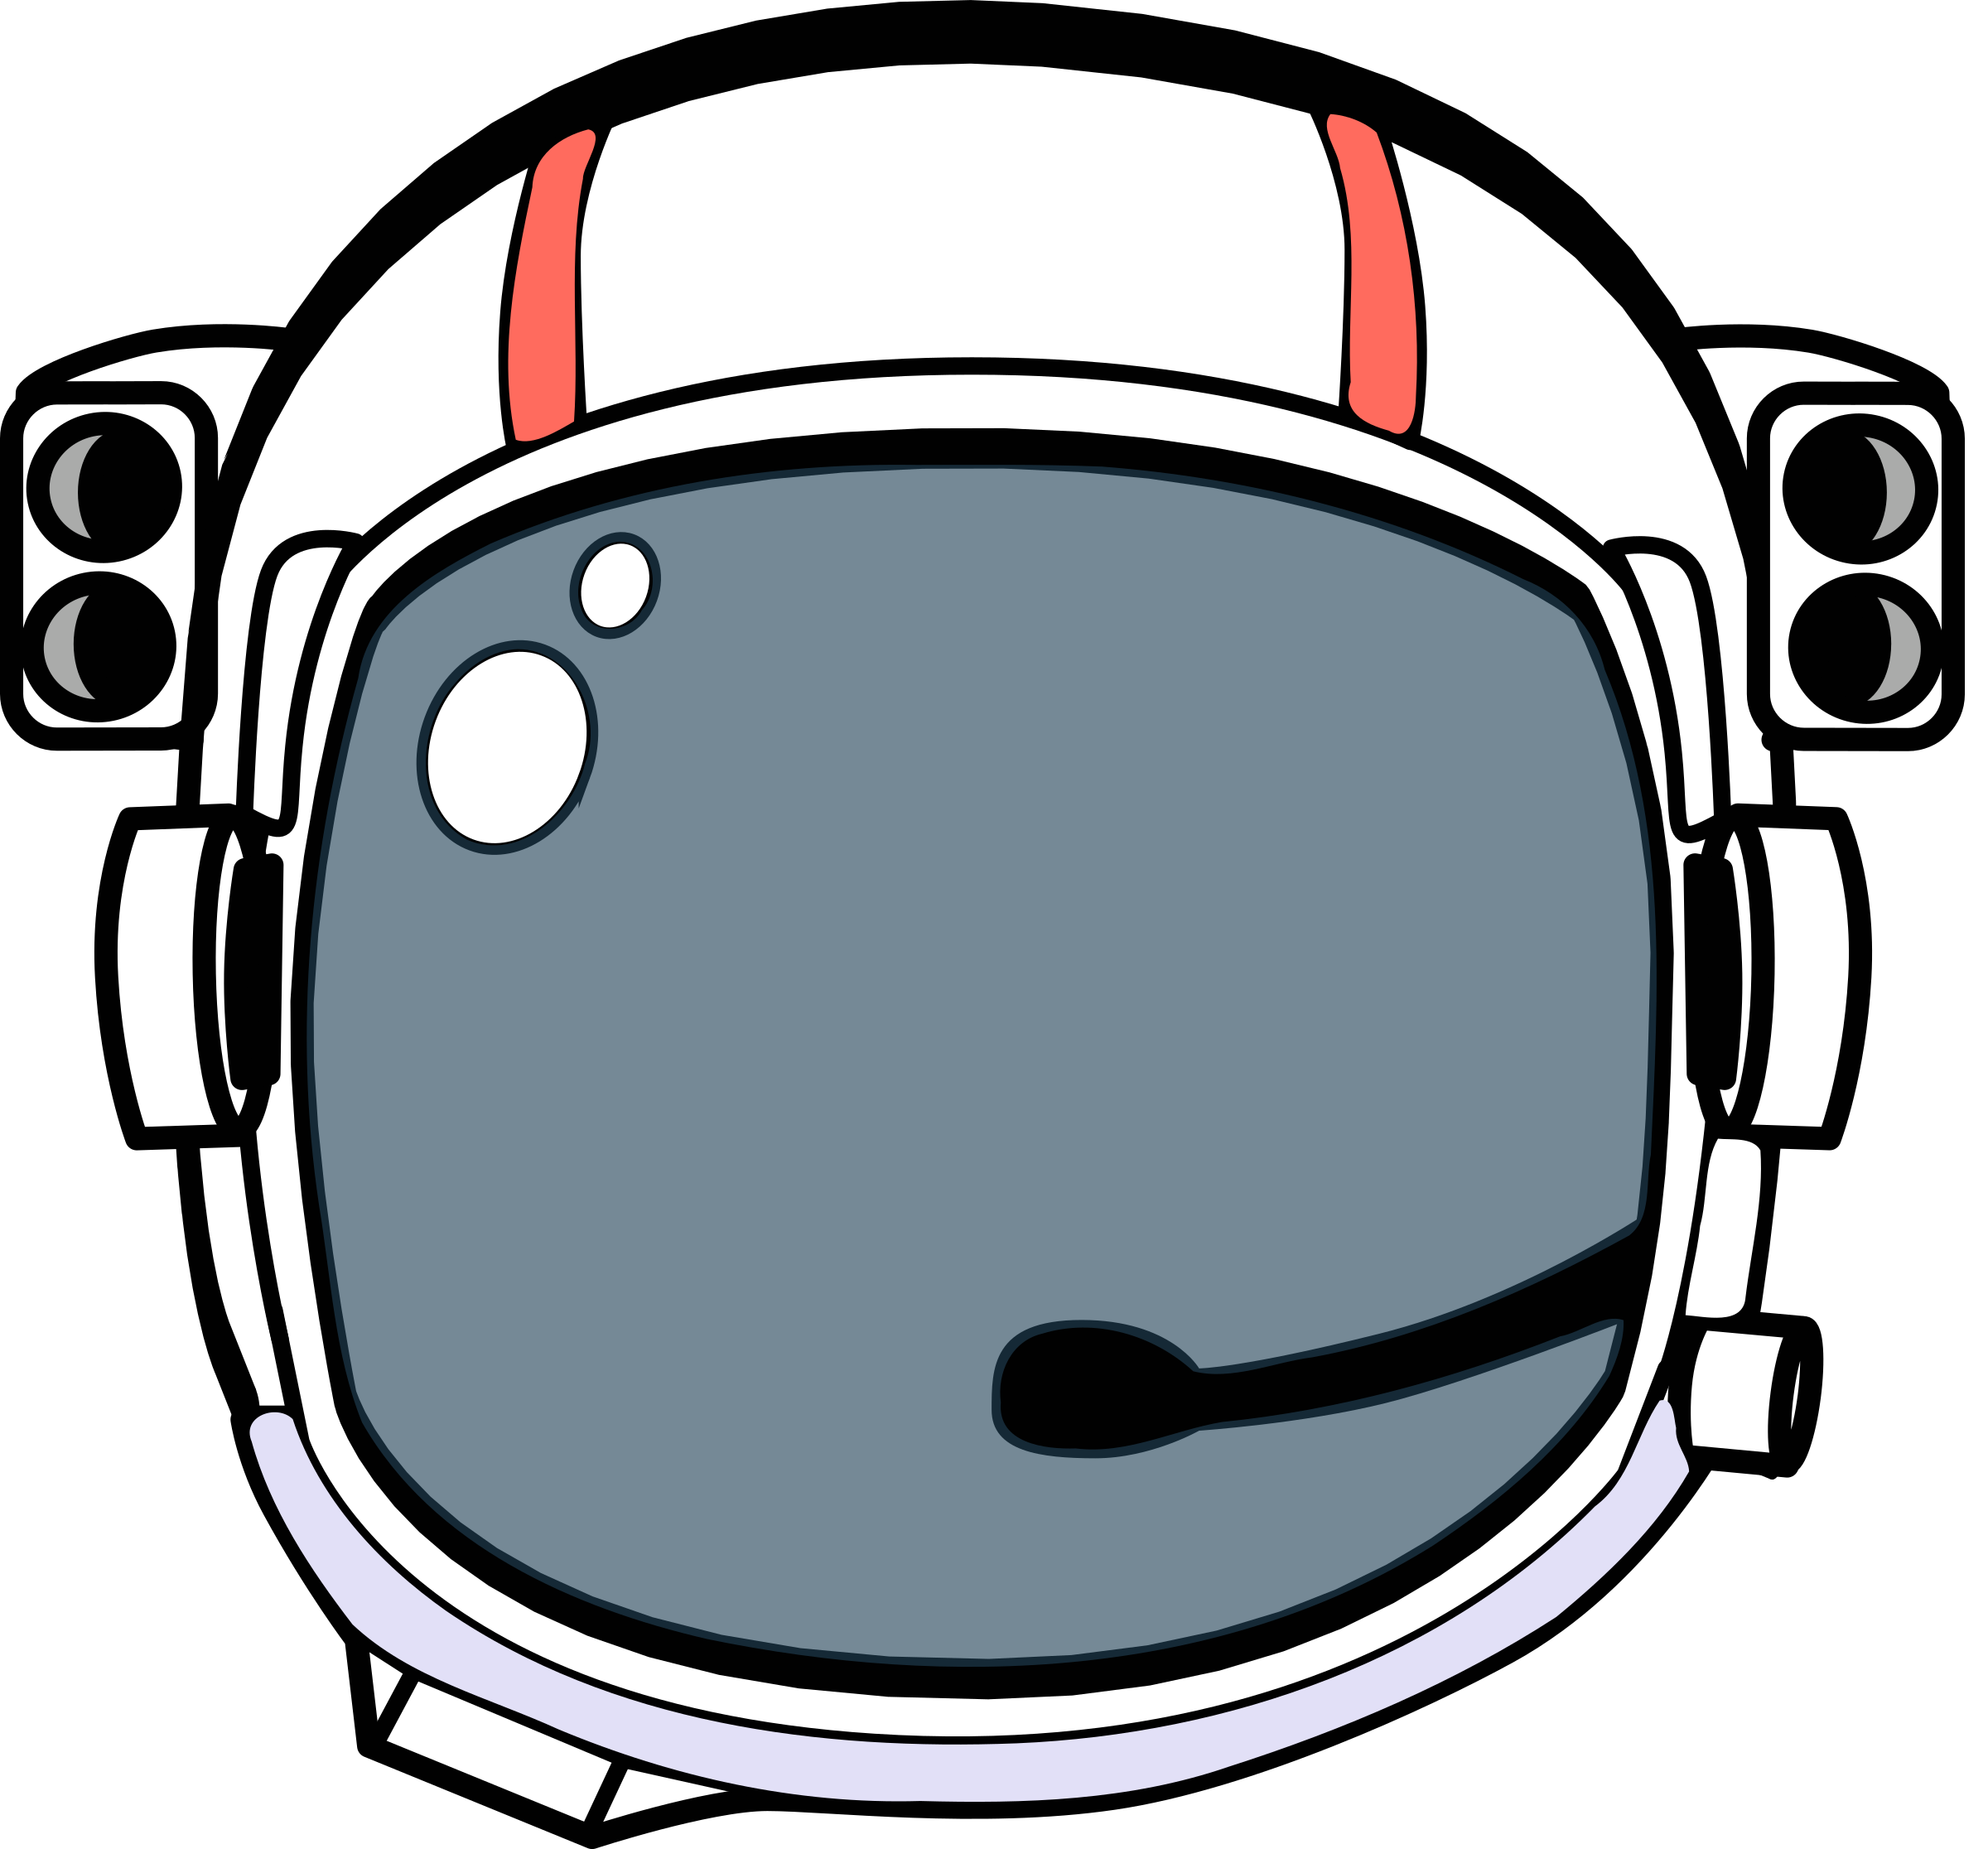 astronaut helmet transparent - photo #5